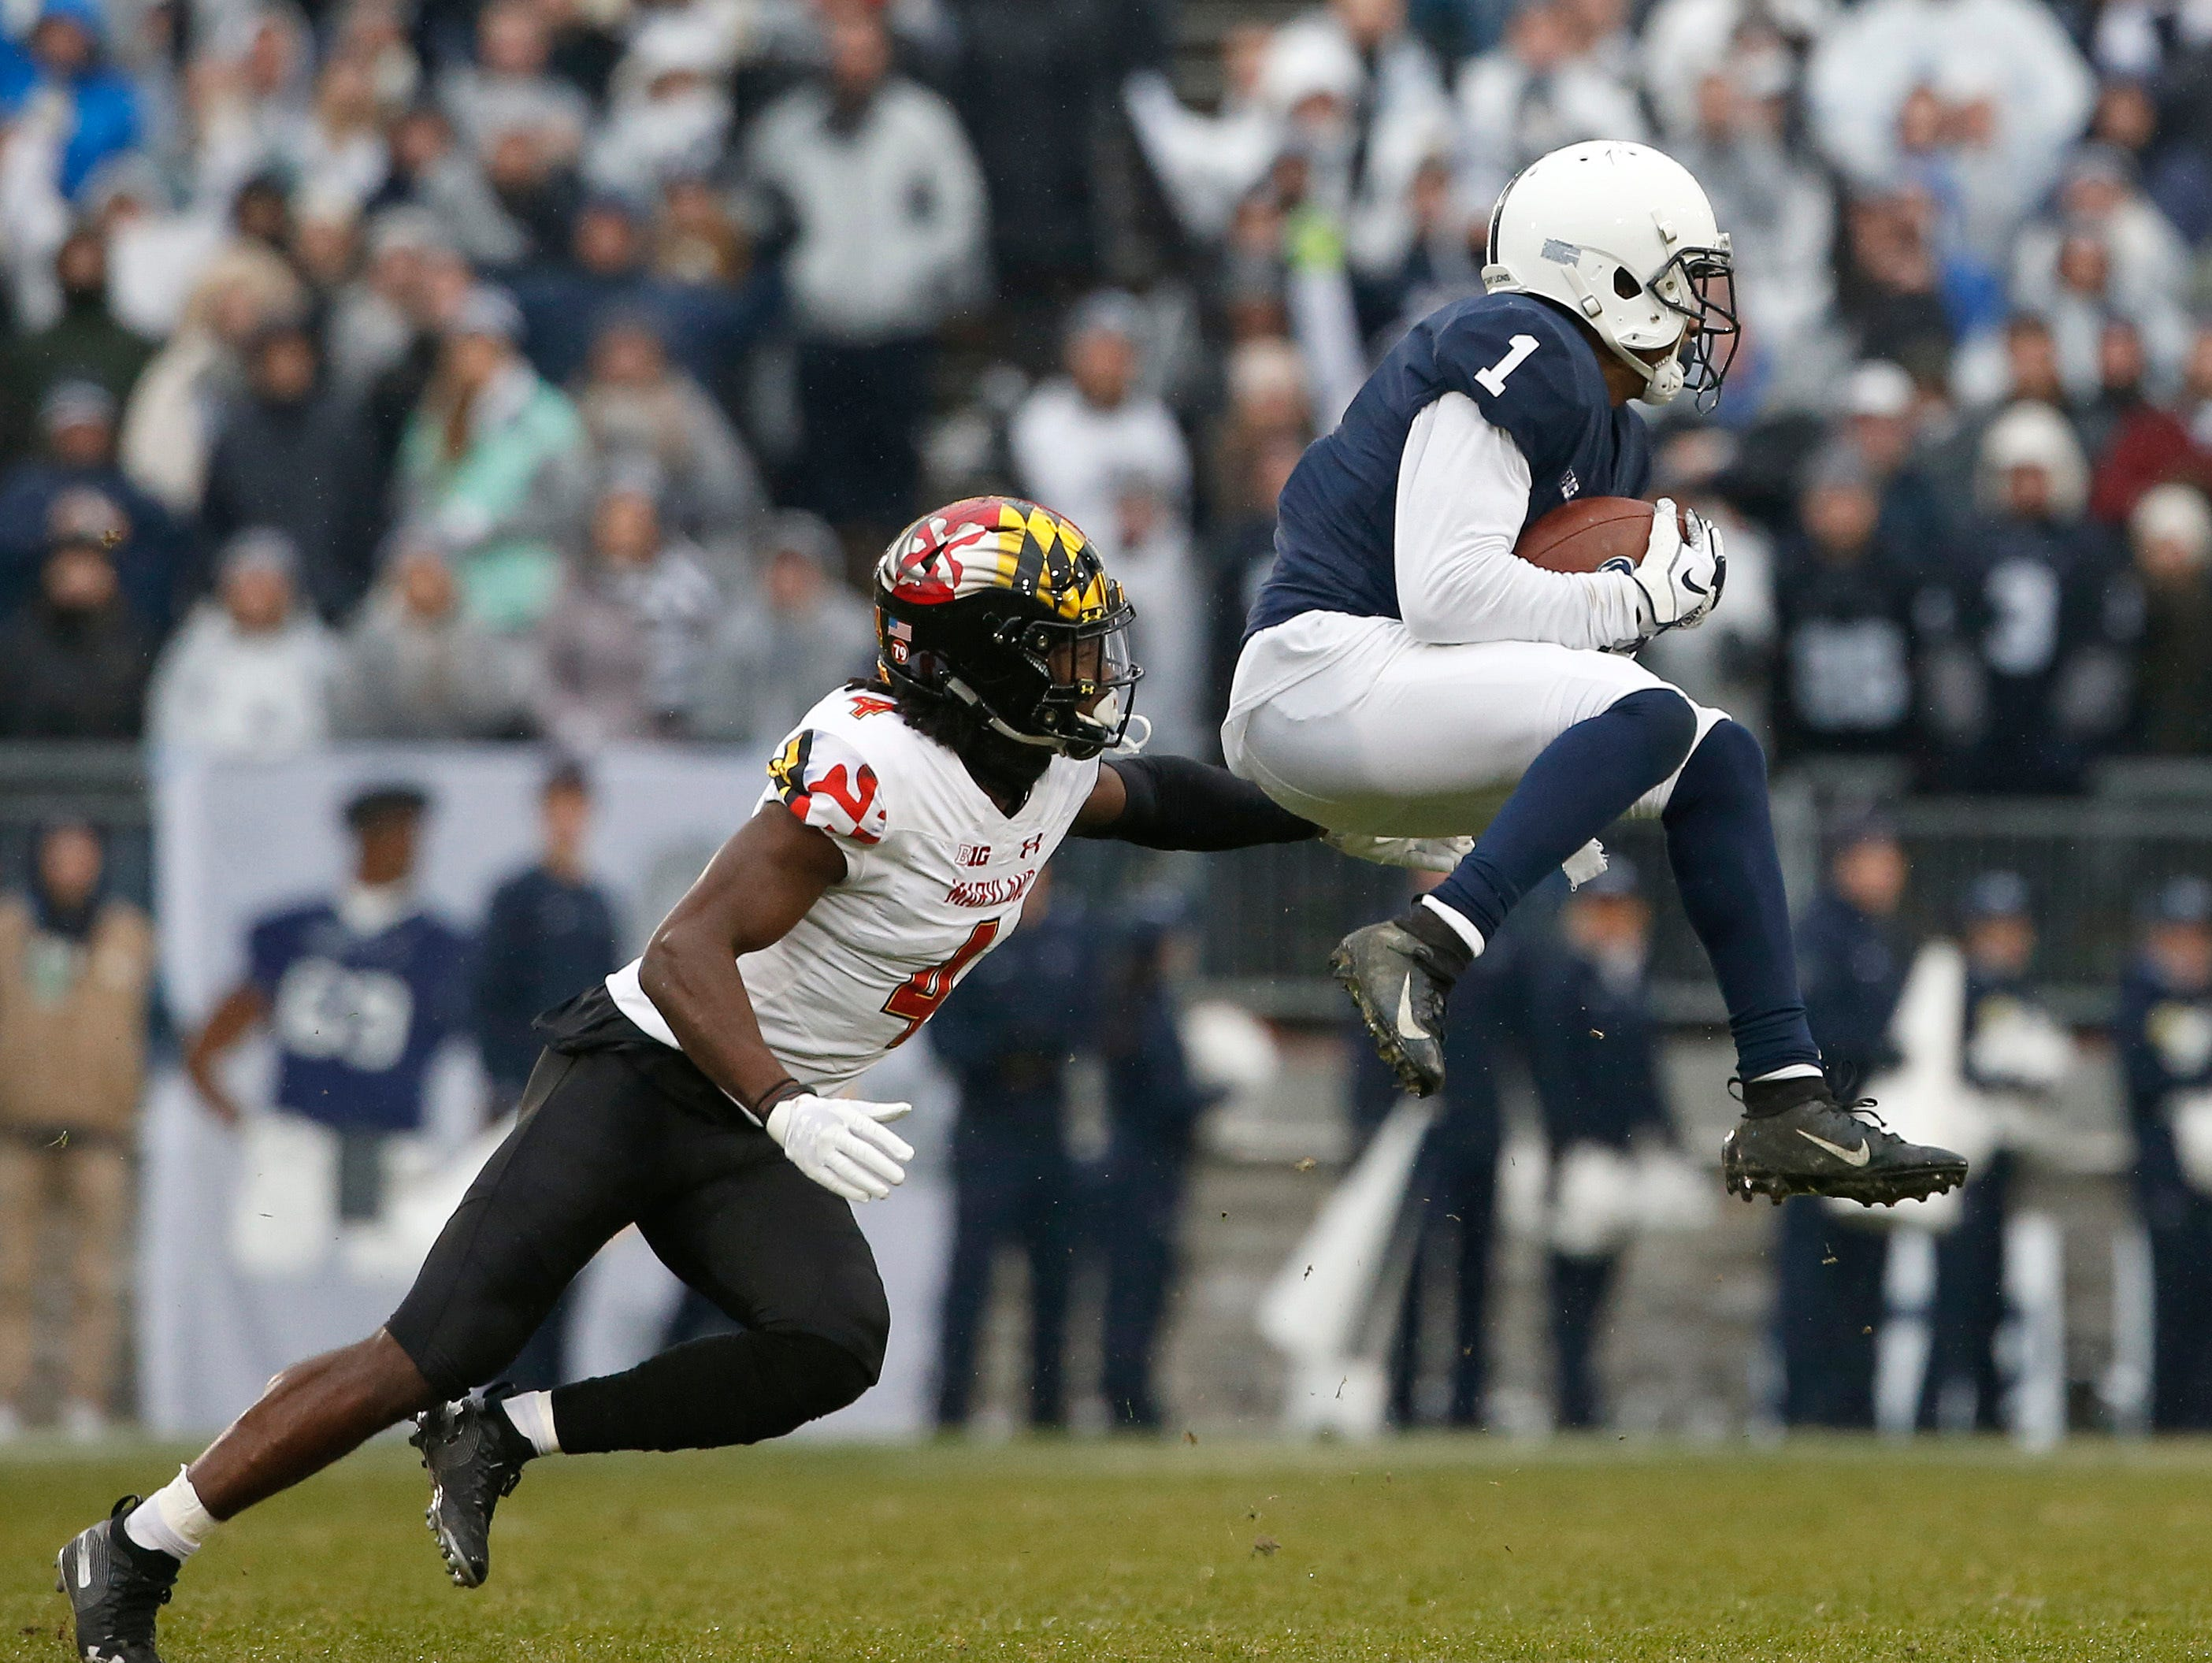 Penn State's KJ Hamler (1) catches a pass in front of Maryland's Darnell Savage Jr. (4) during the first half of an NCAA college football game in State College, Pa., Saturday, Nov. 24, 2018.